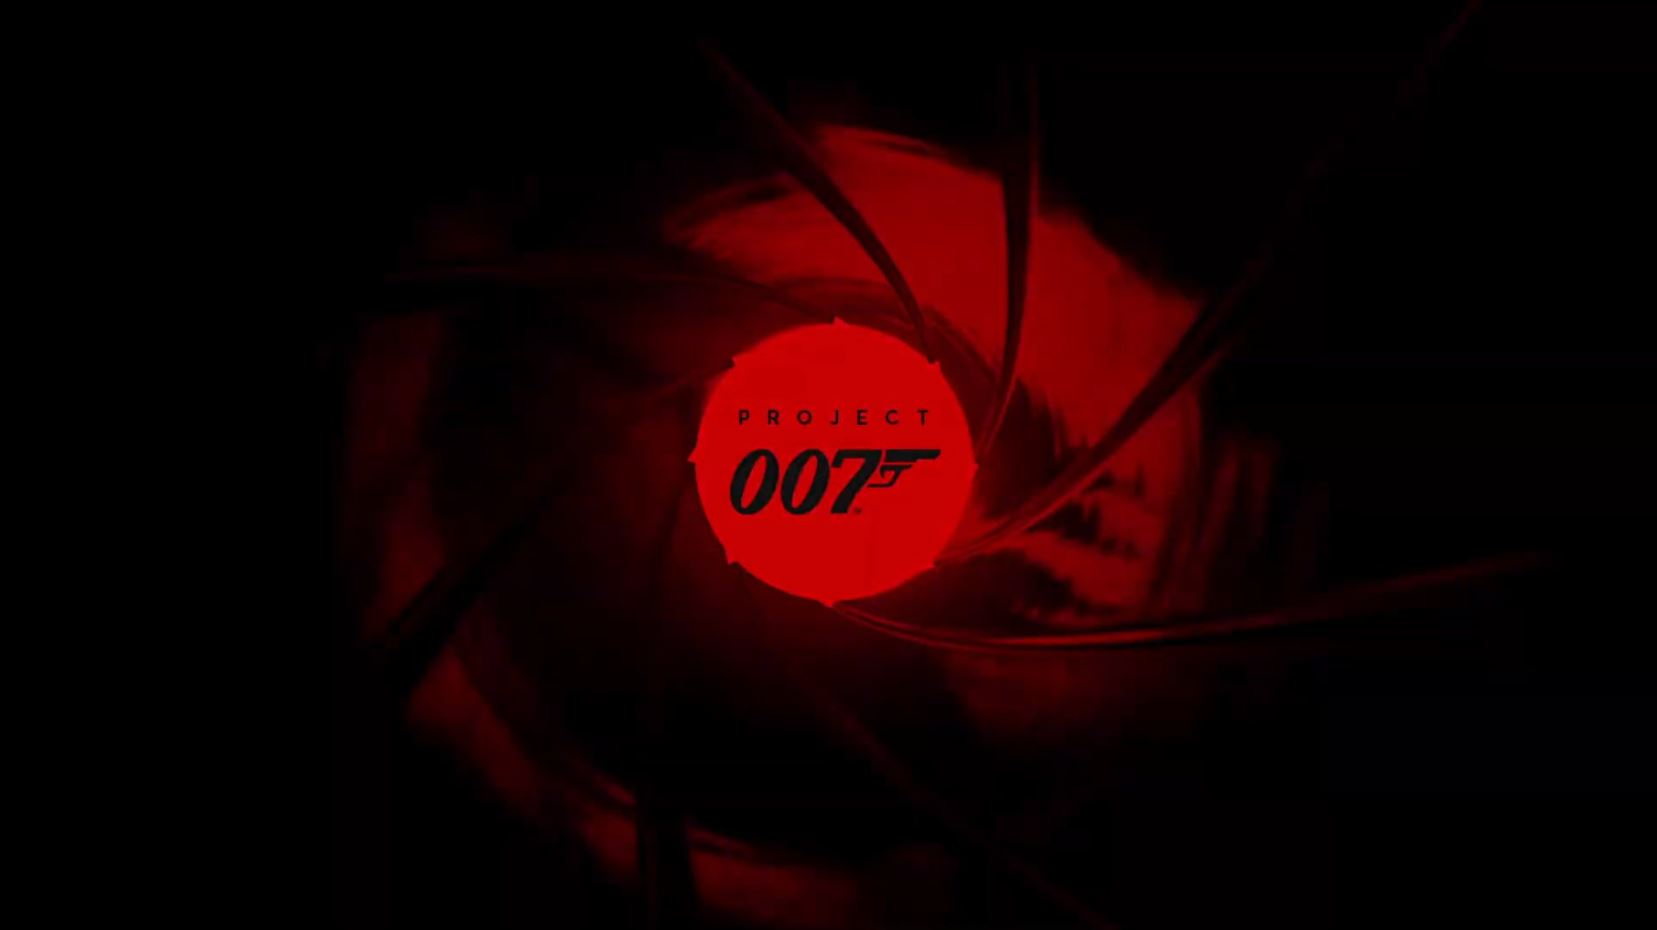 hitman-developer-io-interactive-unveils-project-007-the-first-bond-game-for-consoles-in-8-years